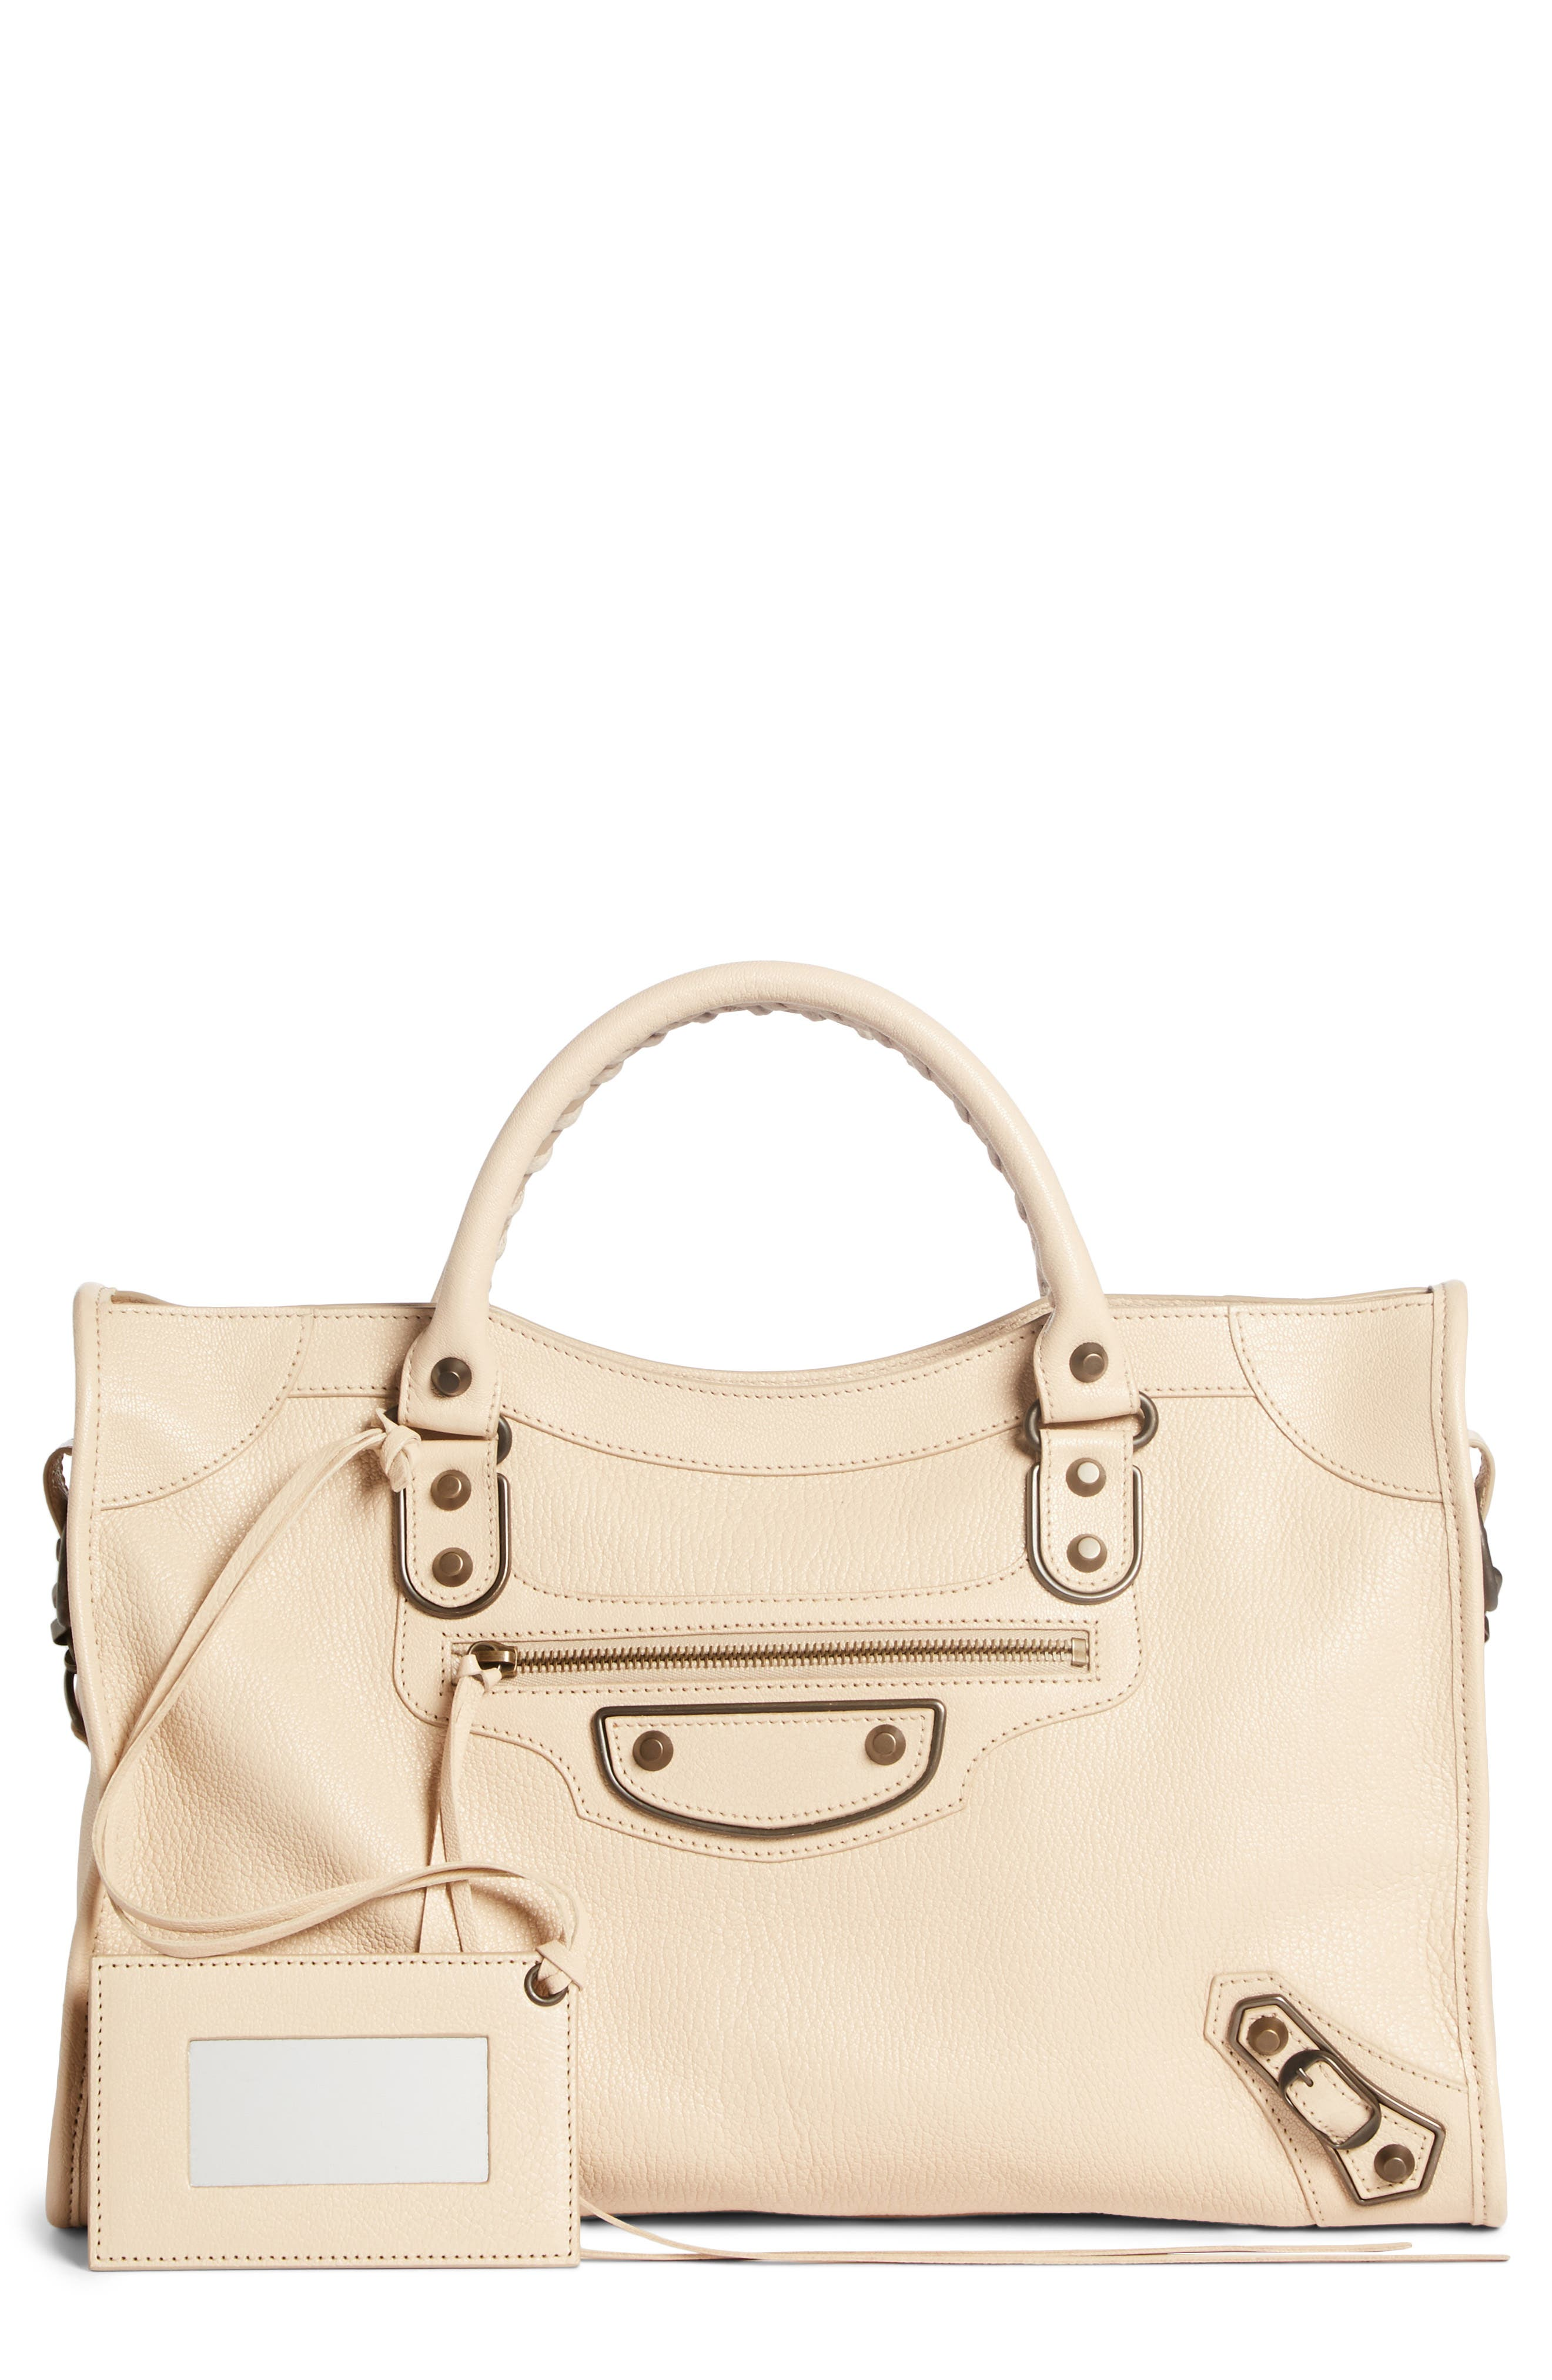 Balenciaga Classic Metallic Edge City Leather Tote